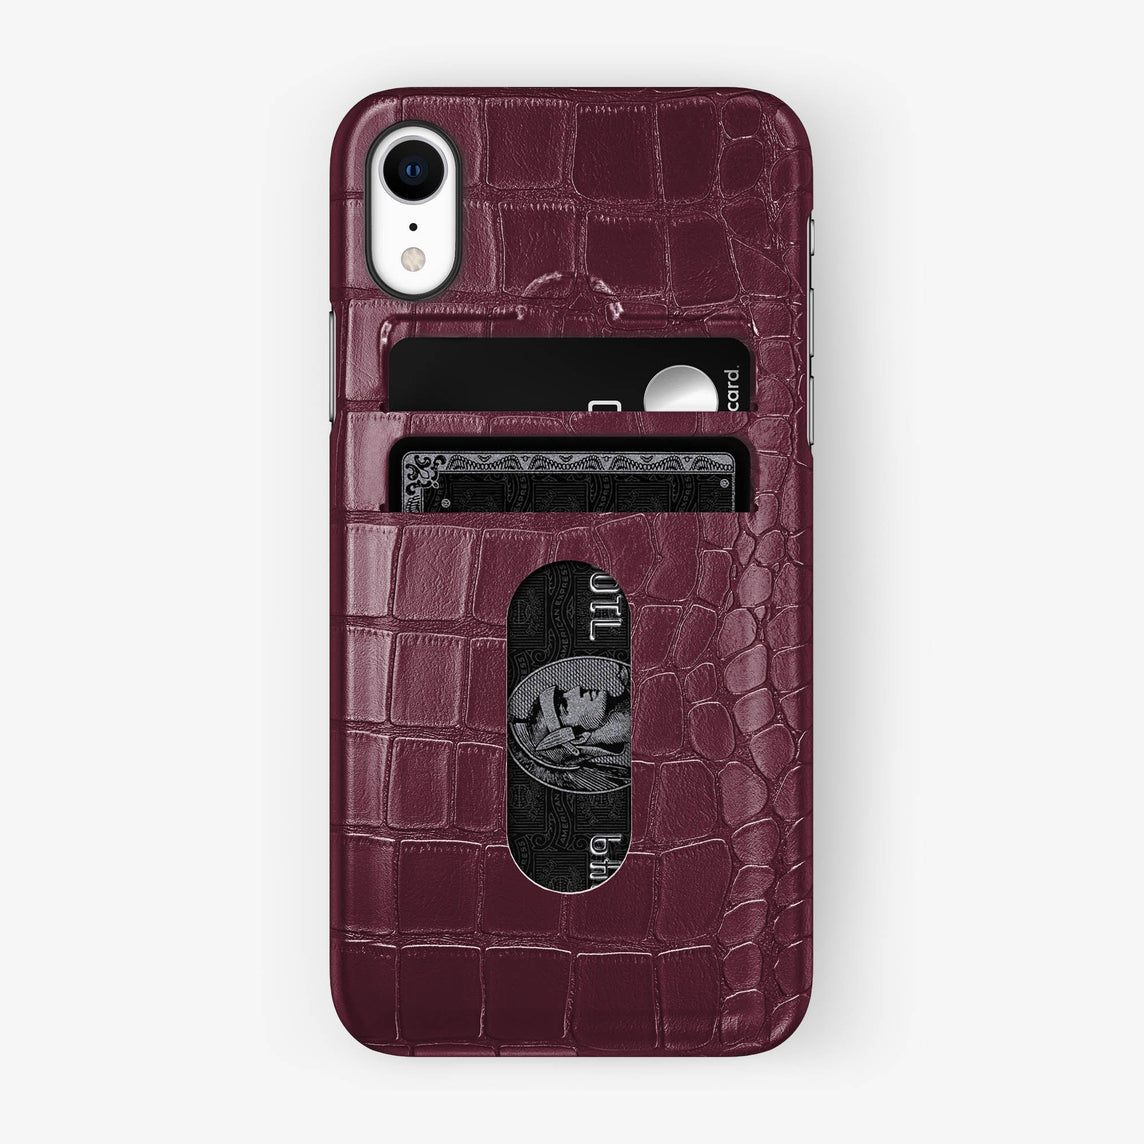 Alligator Card Holder Case iPhone Xr | Burgundy - Black